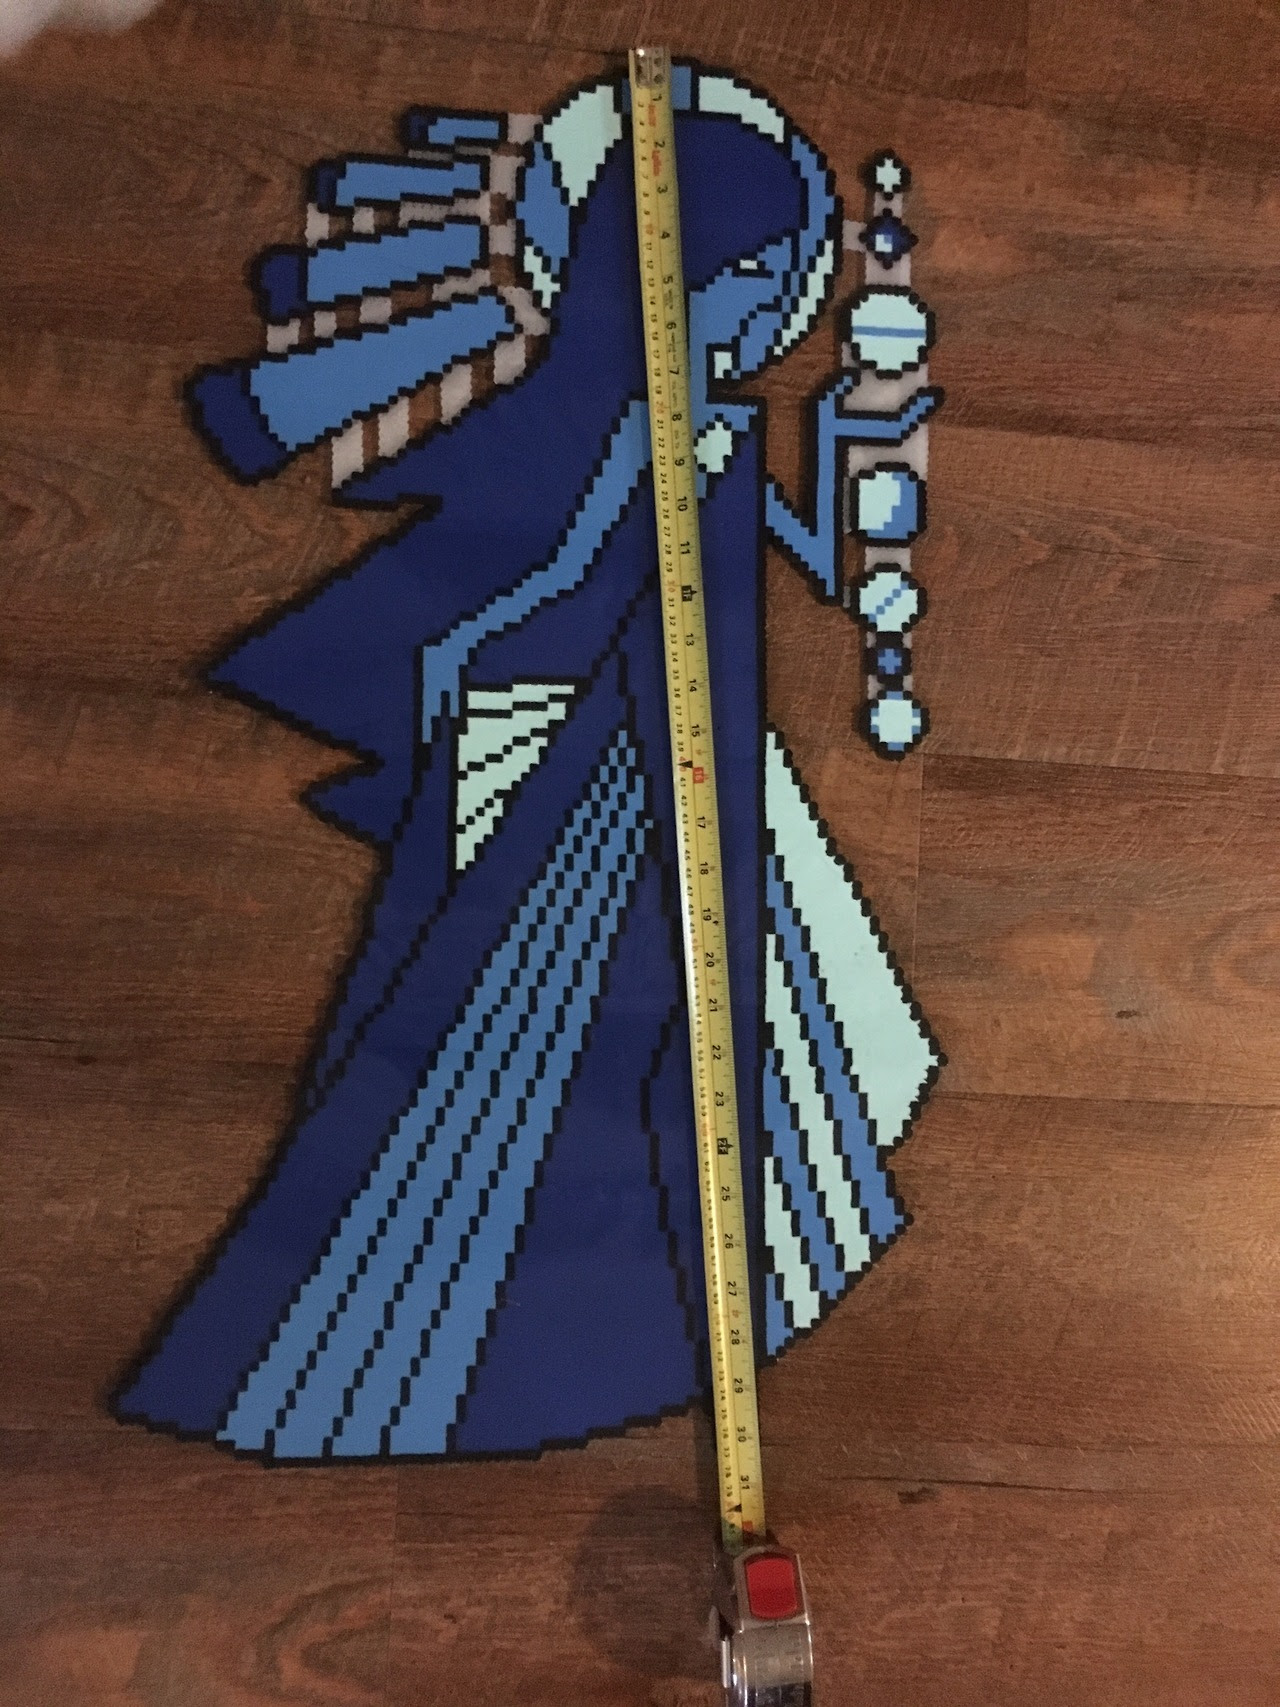 Blue Diamond's mural from Steven Universe in perler beads